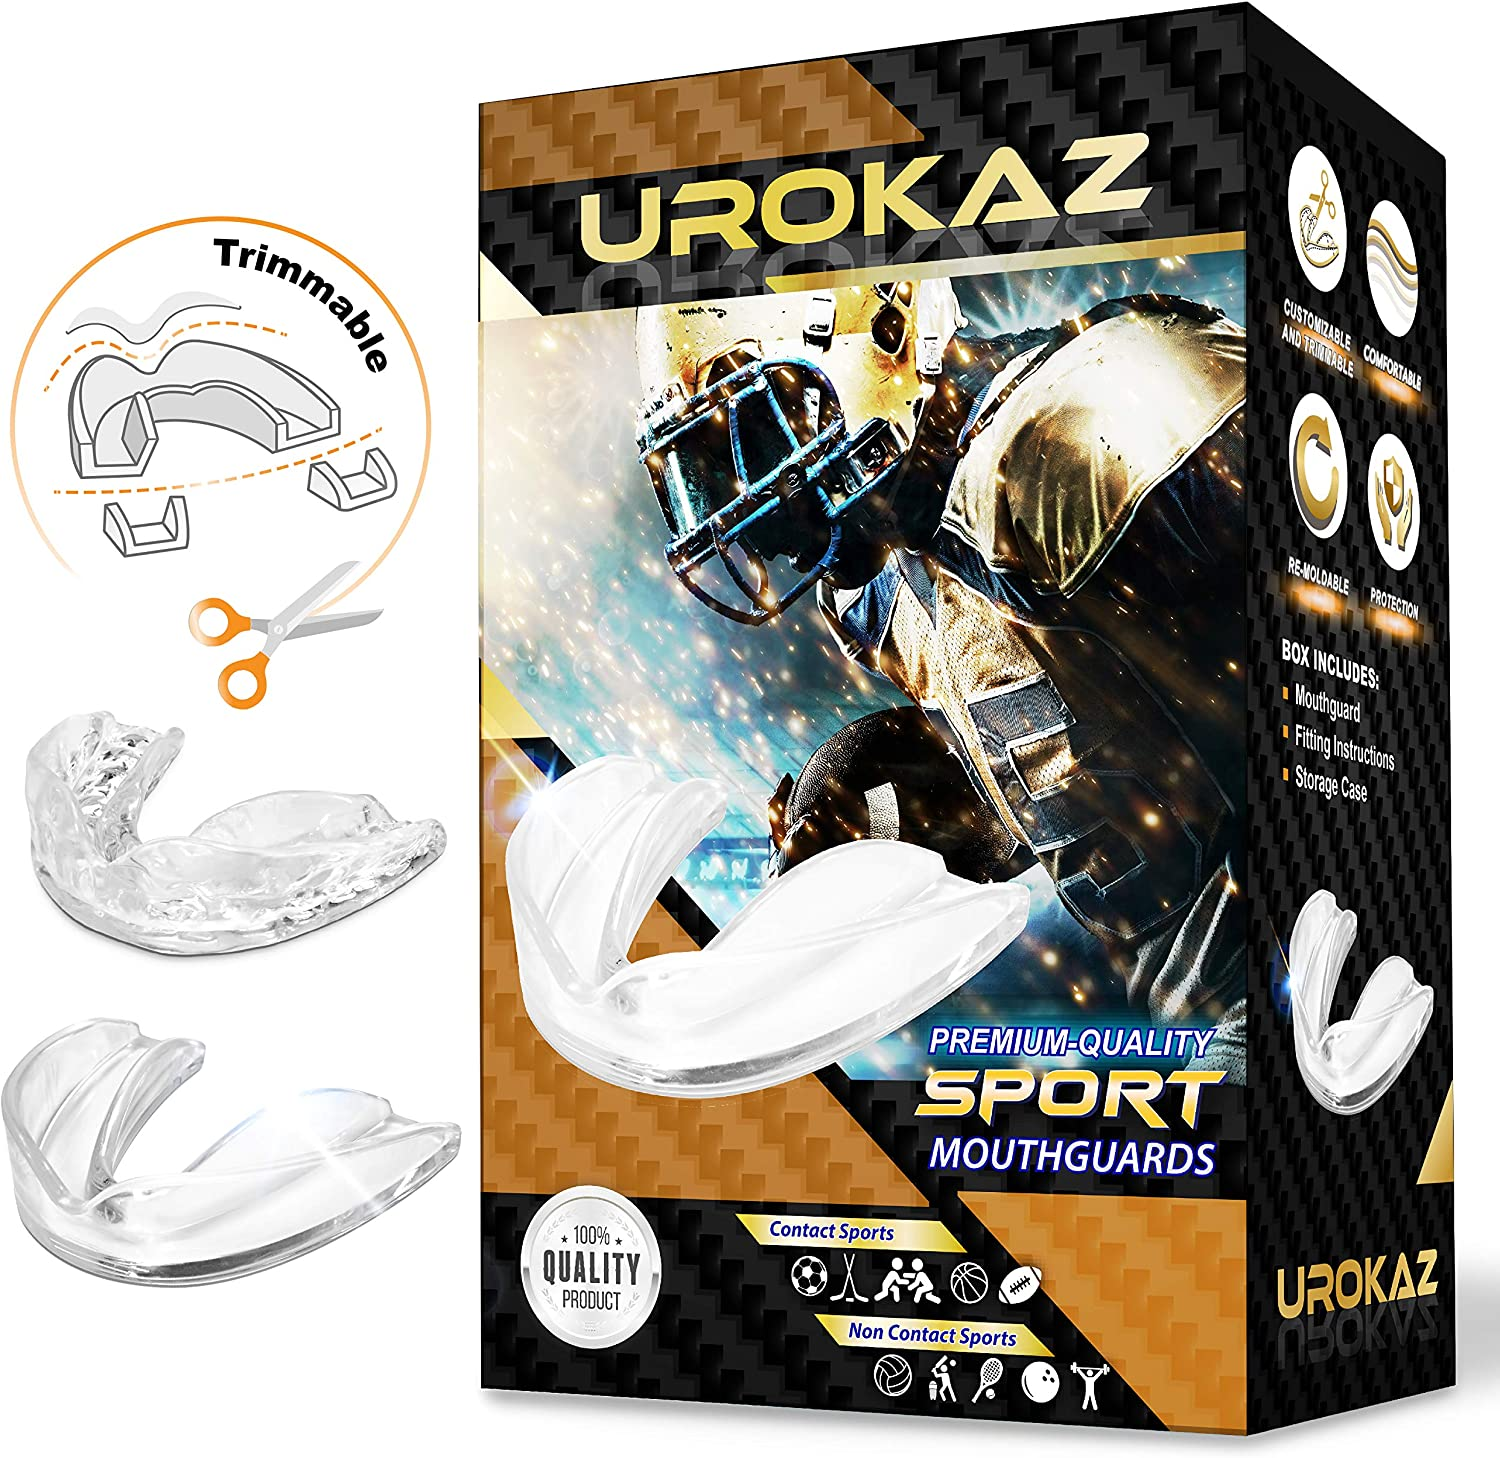 Basketball Hockey and All Contact Sports Adults and Junior Mouth Guard with Case for Boxing Martial Arts Football Lacrosse SAFEJAWZ Mouthguard Slim Fit MMA